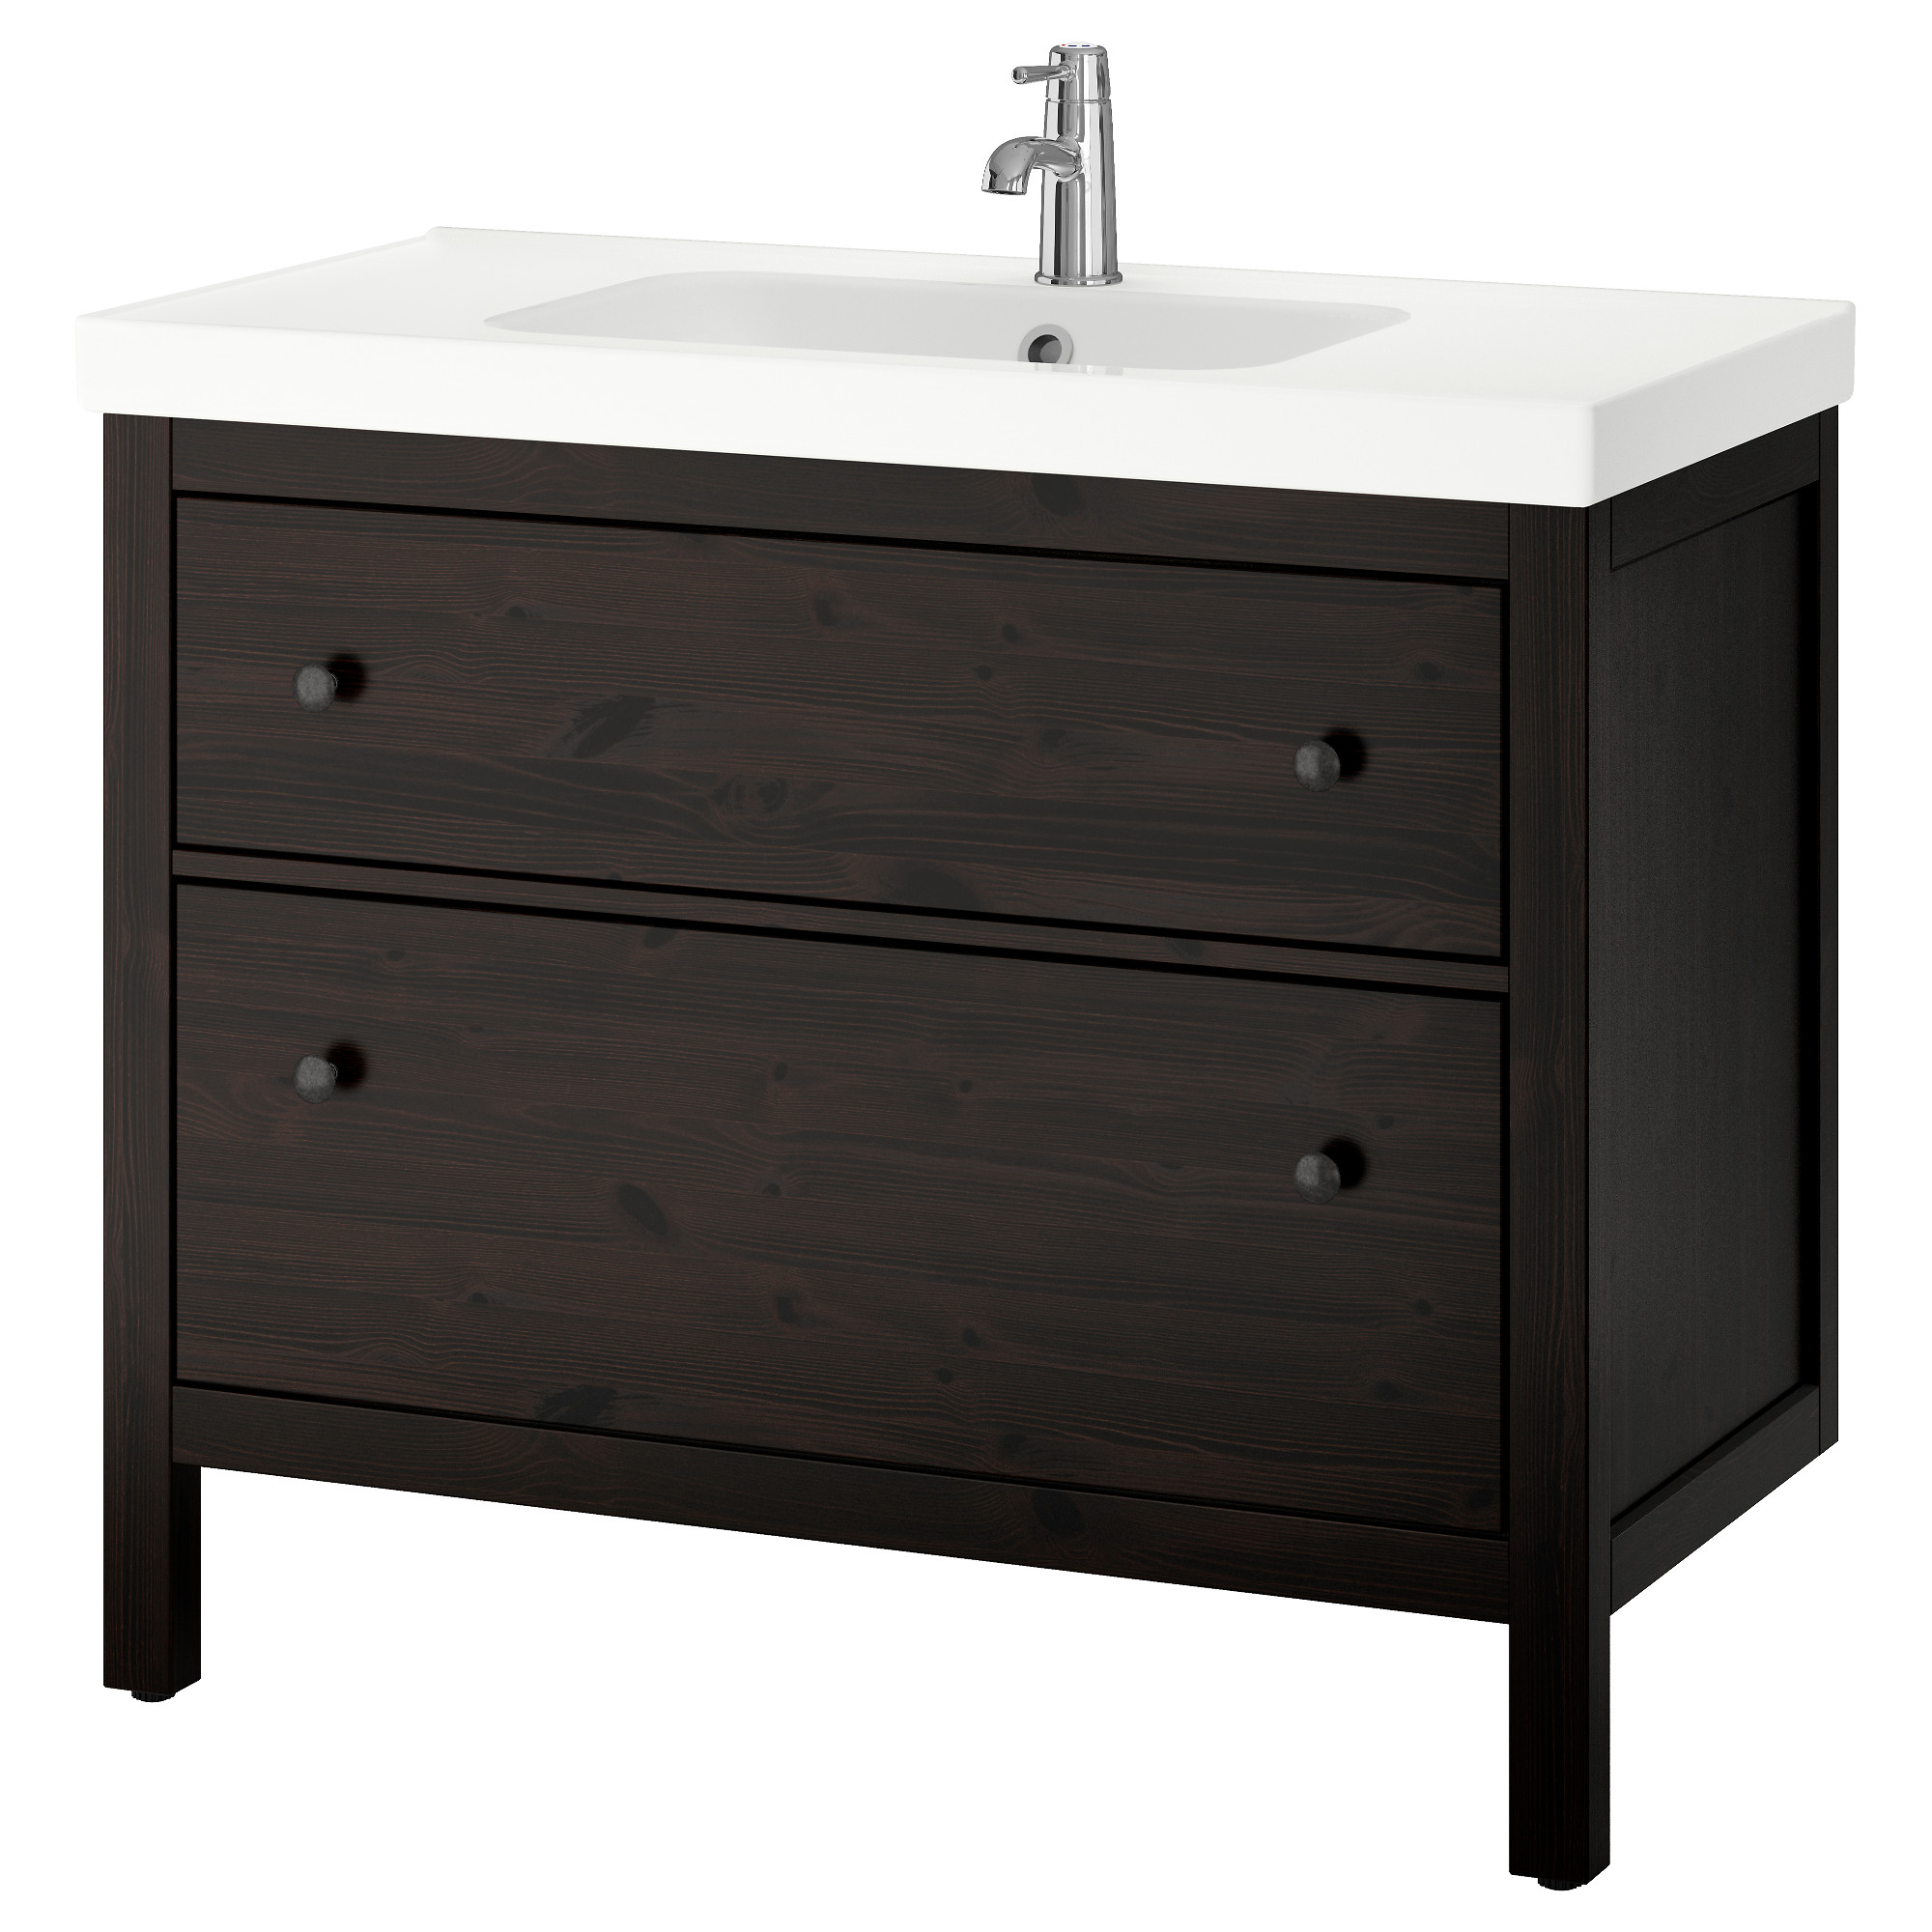 Custom Bathroom Vanities Tampa bathroom vanities & countertops - ikea